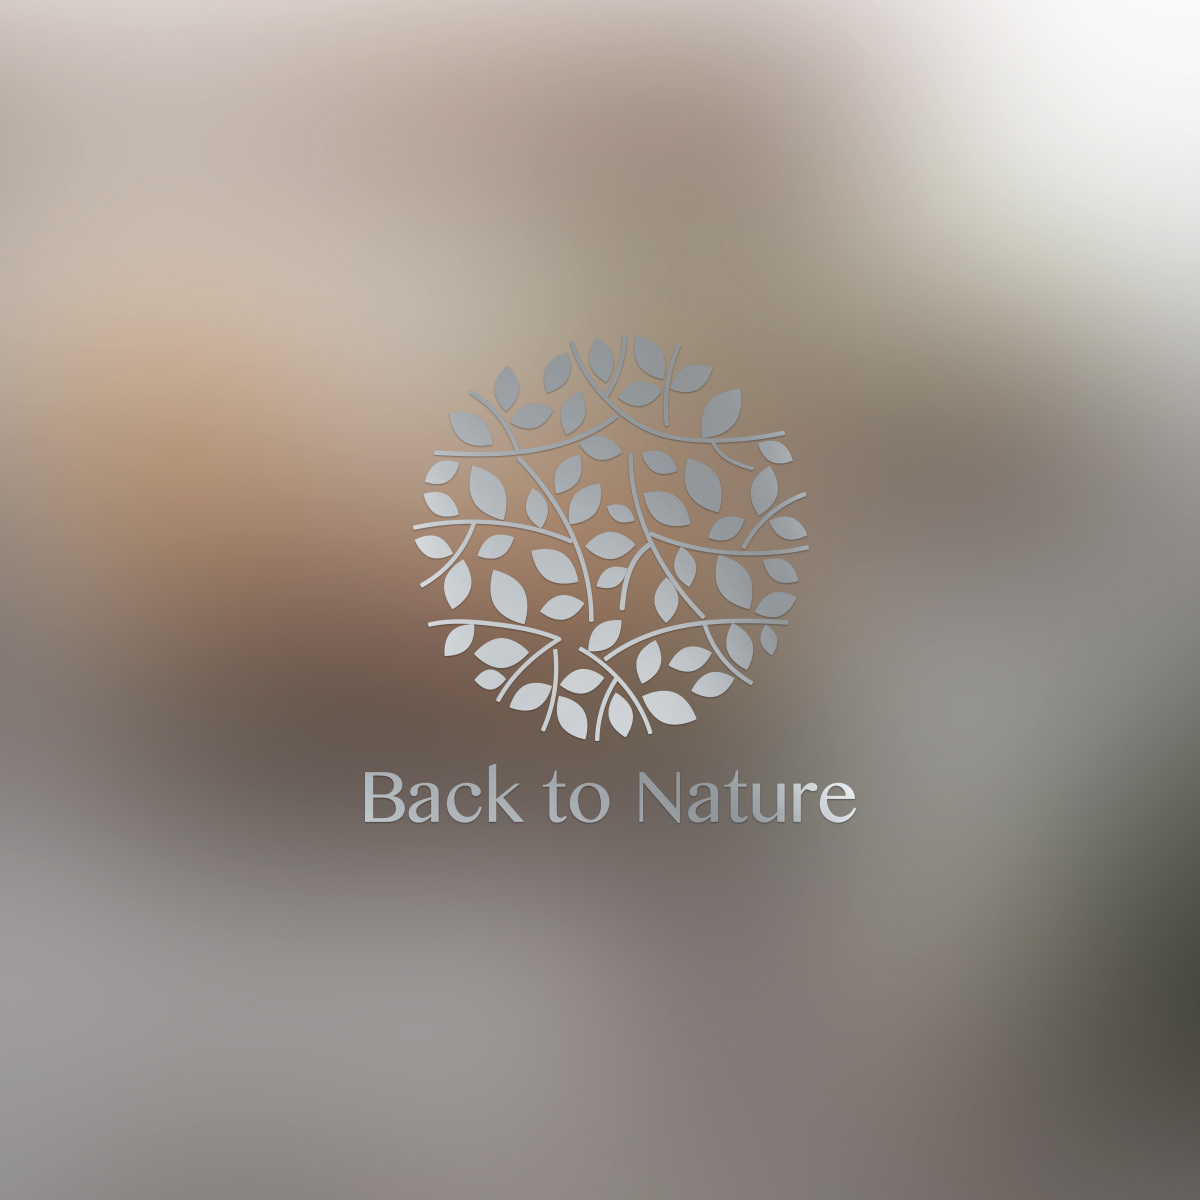 Sustainable serveware logo design for back to nature